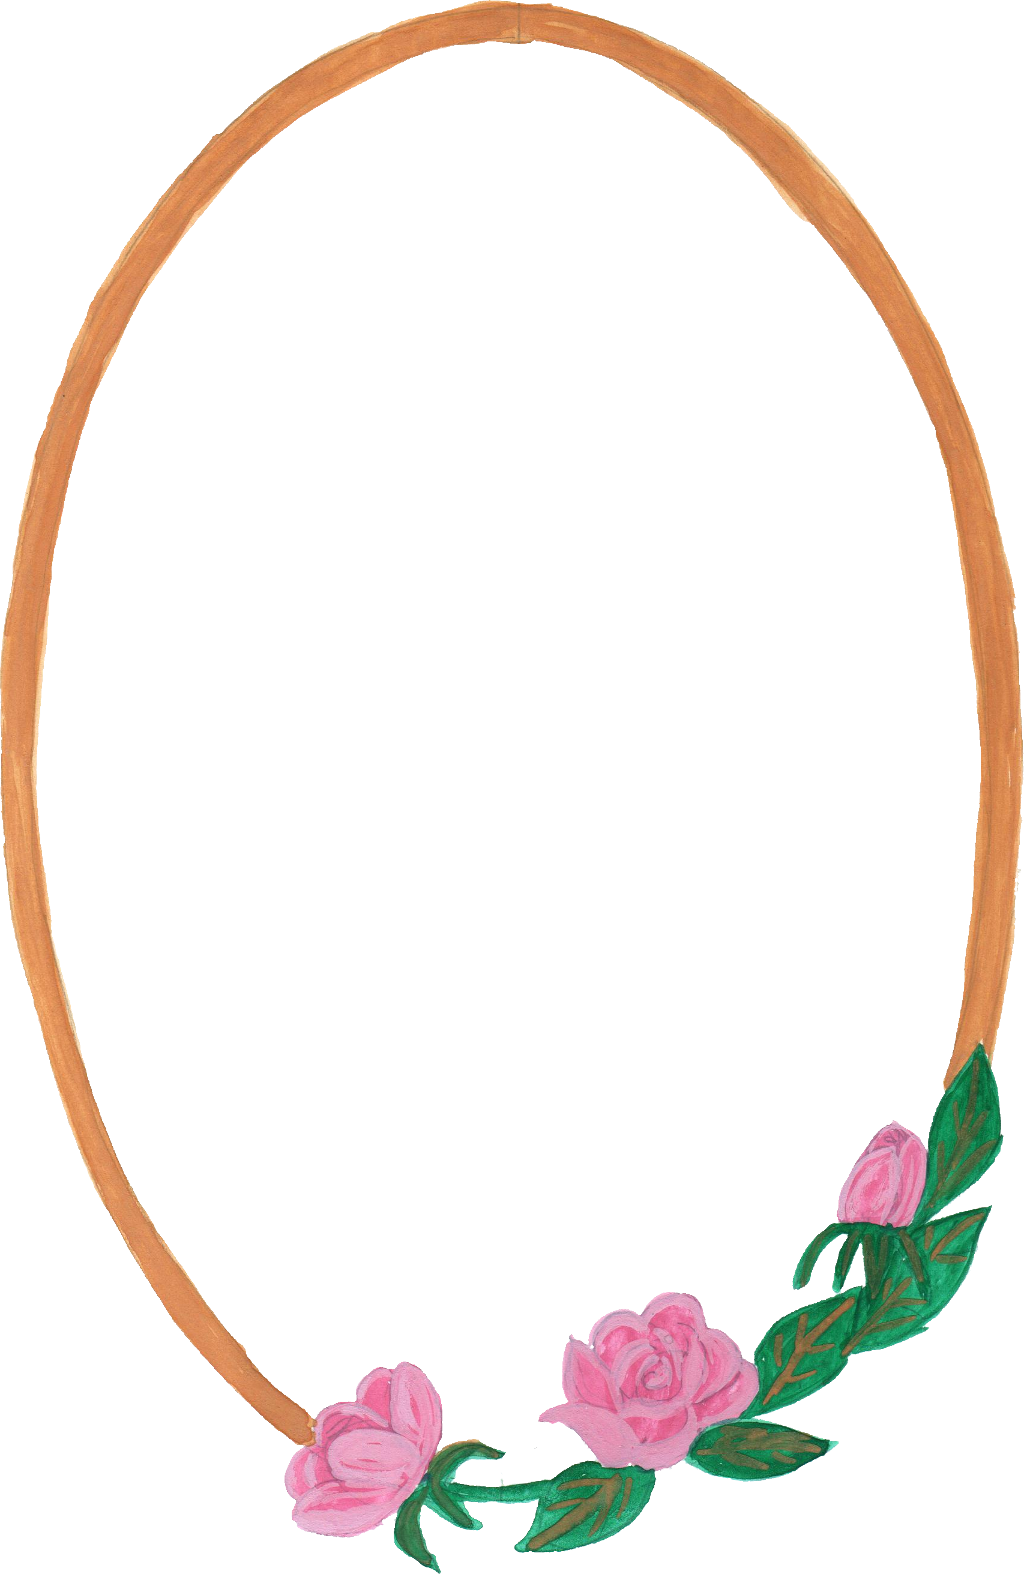 Png oval frame. Watercolor with flowers